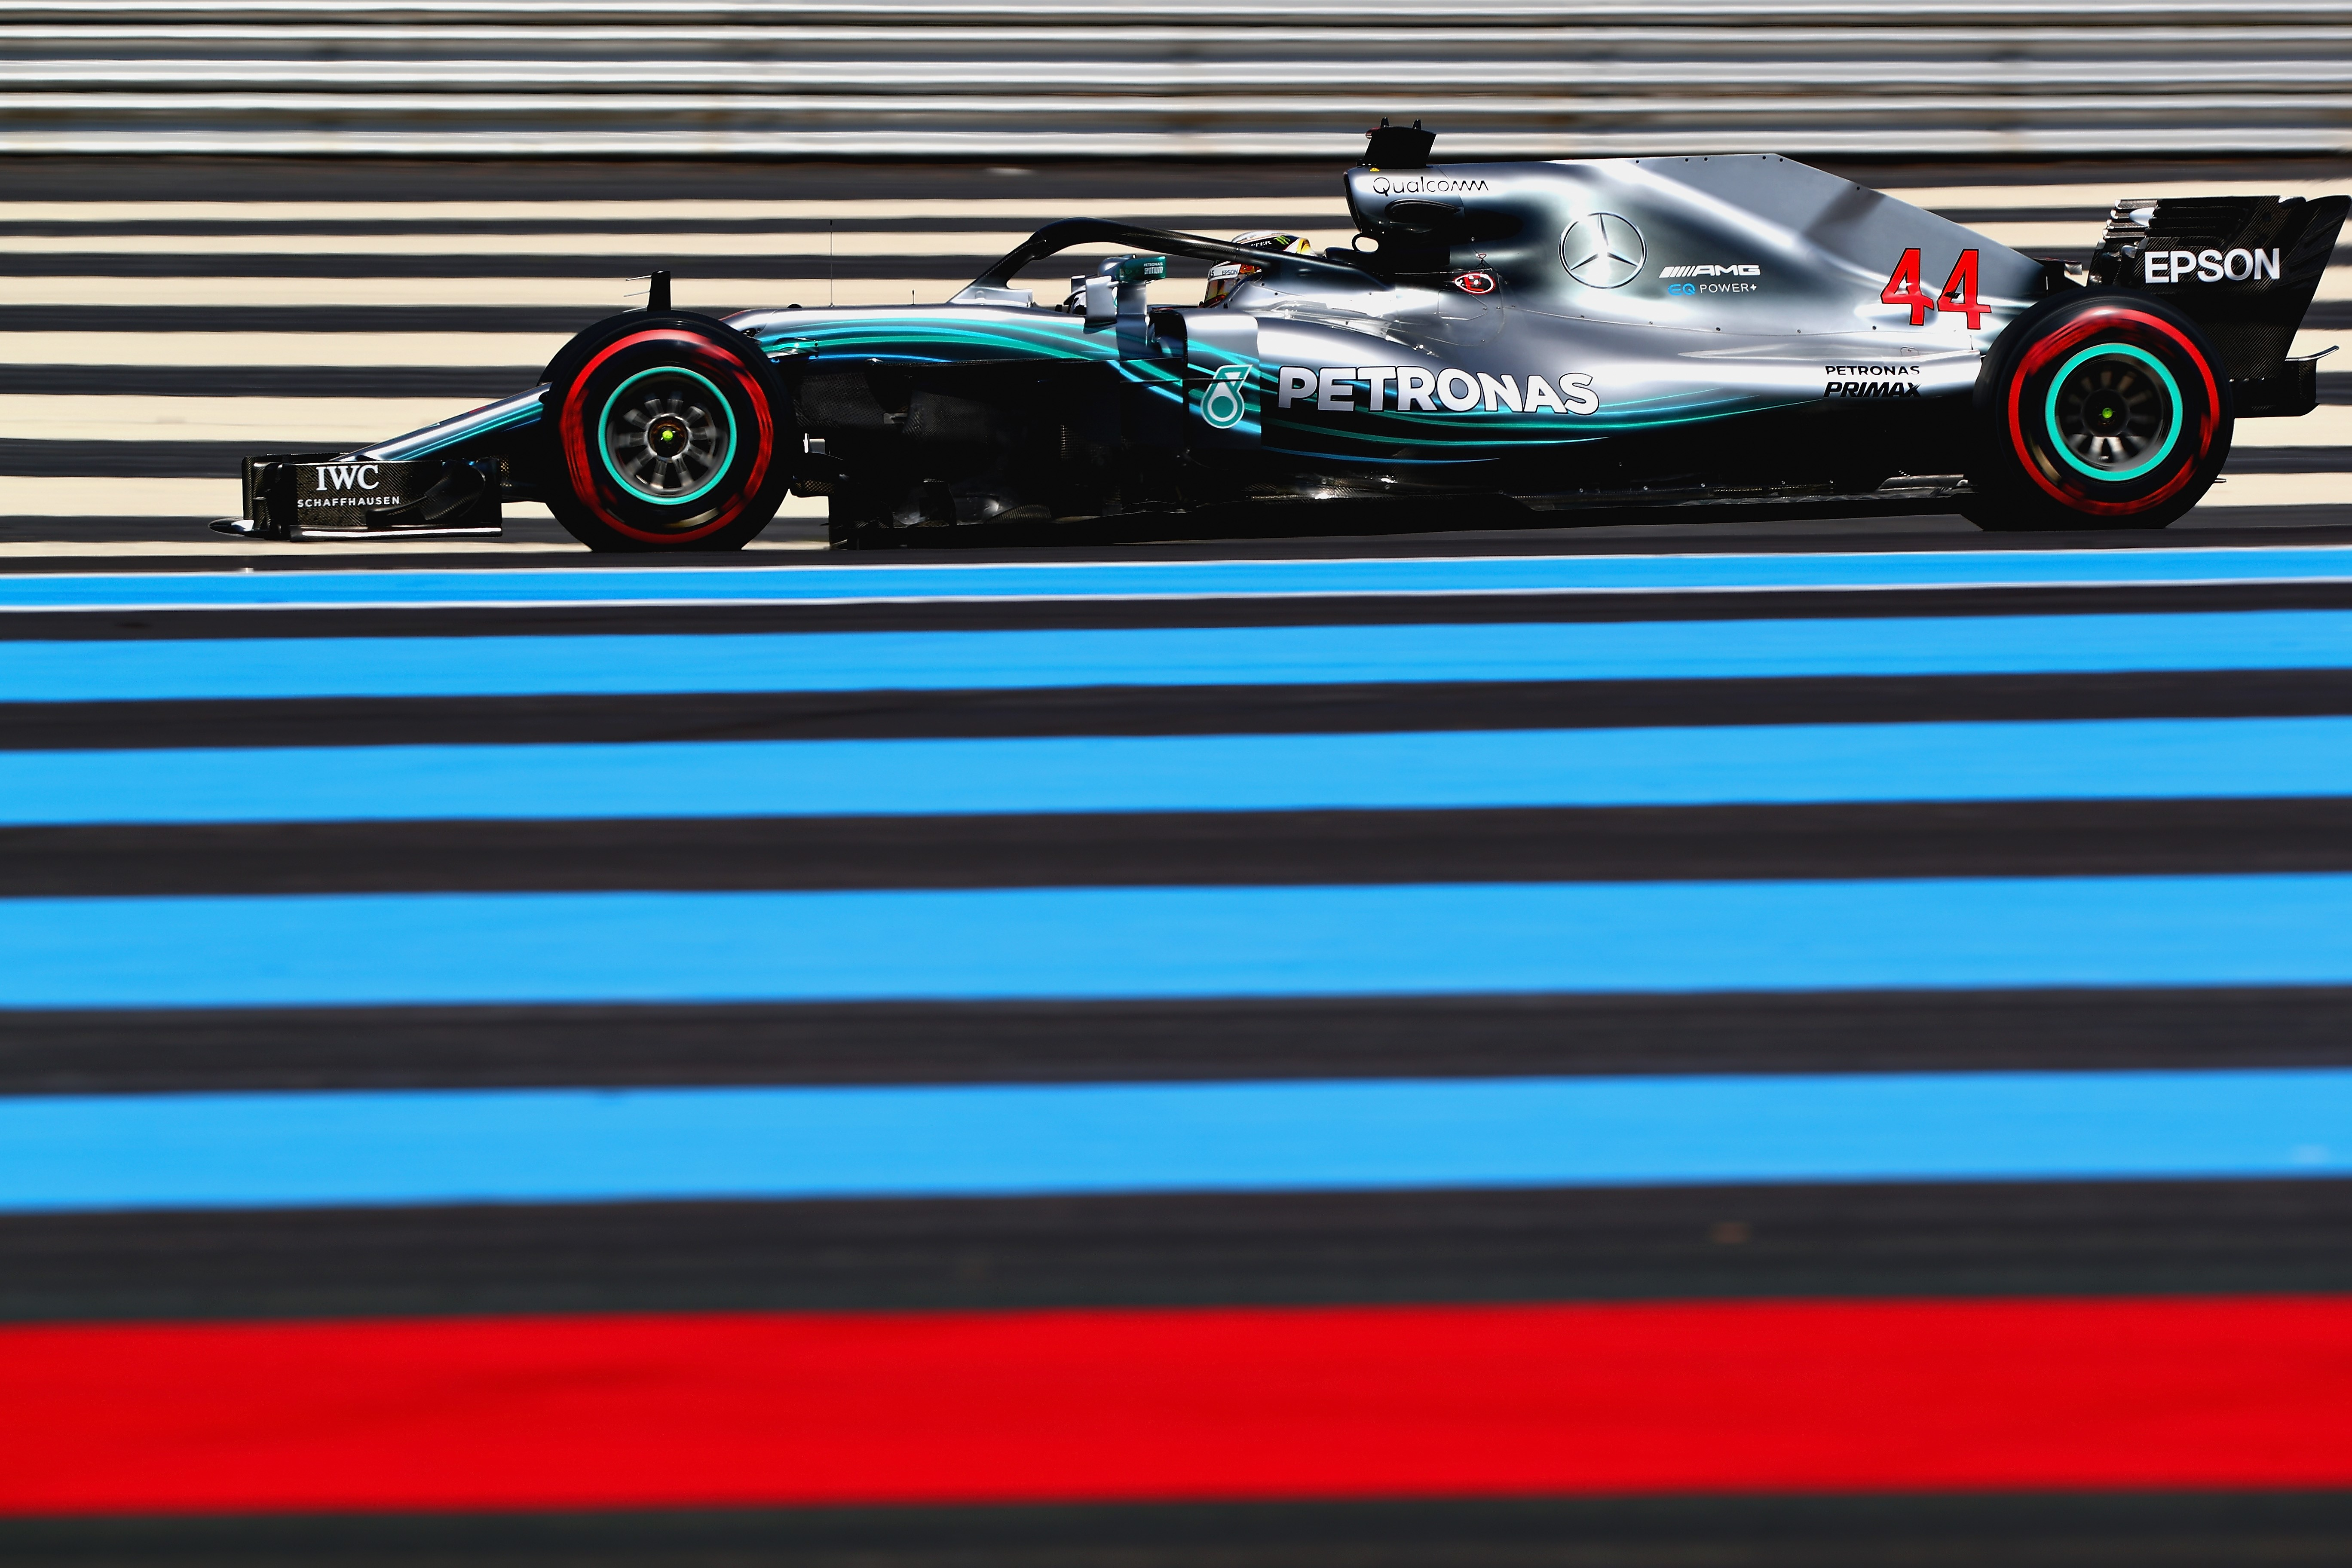 Lewis Hamilton (Mercedes) au Grand Prix de France 2018